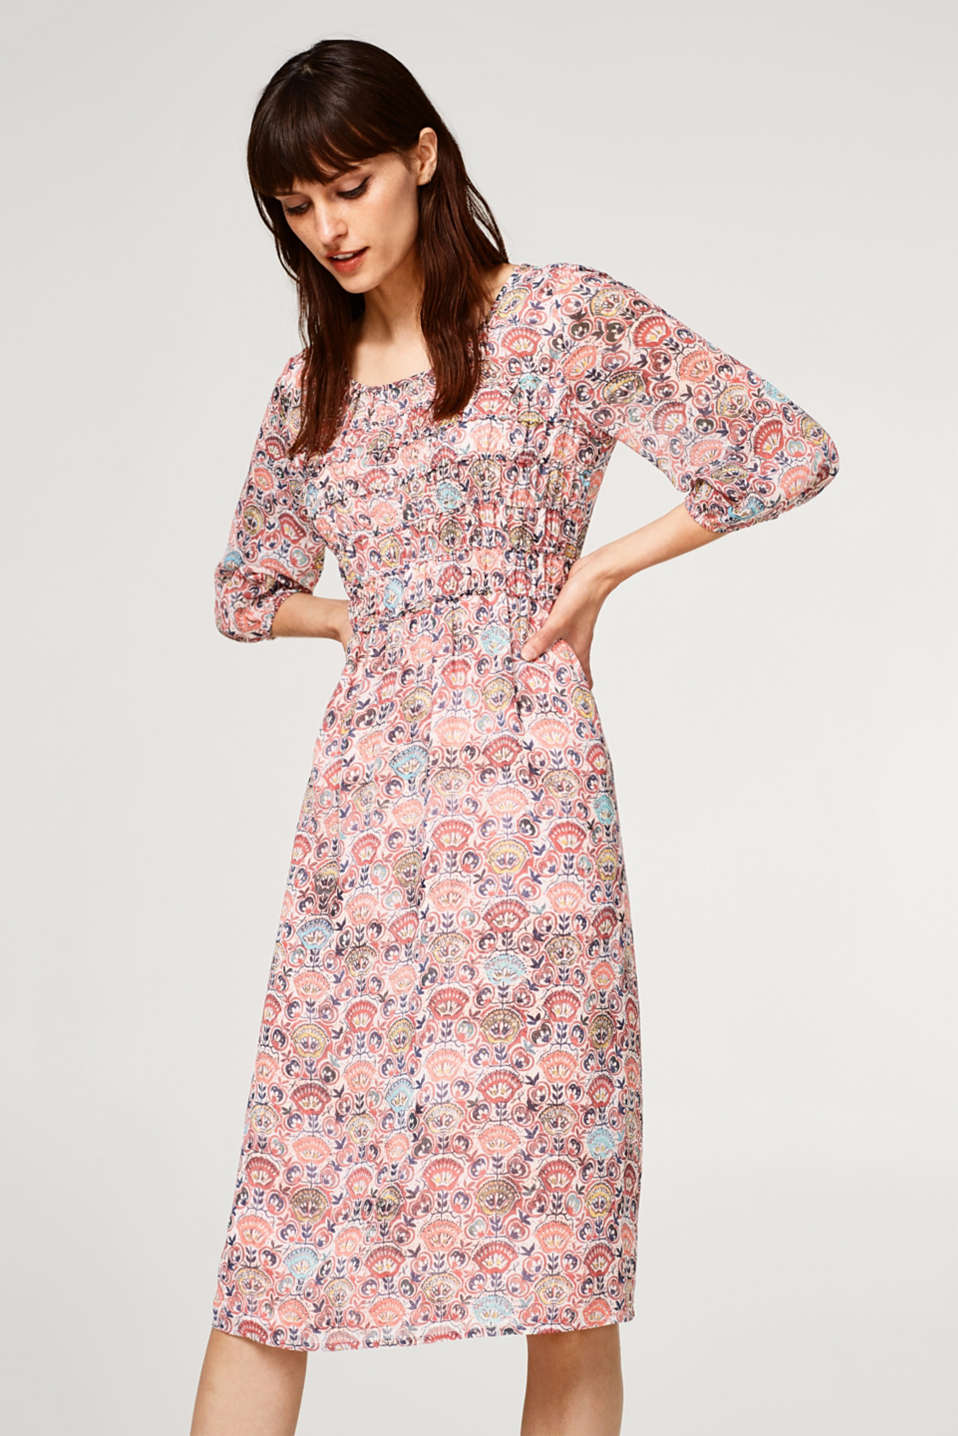 Esprit - Lightweight chiffon dress with a print and smocked effect